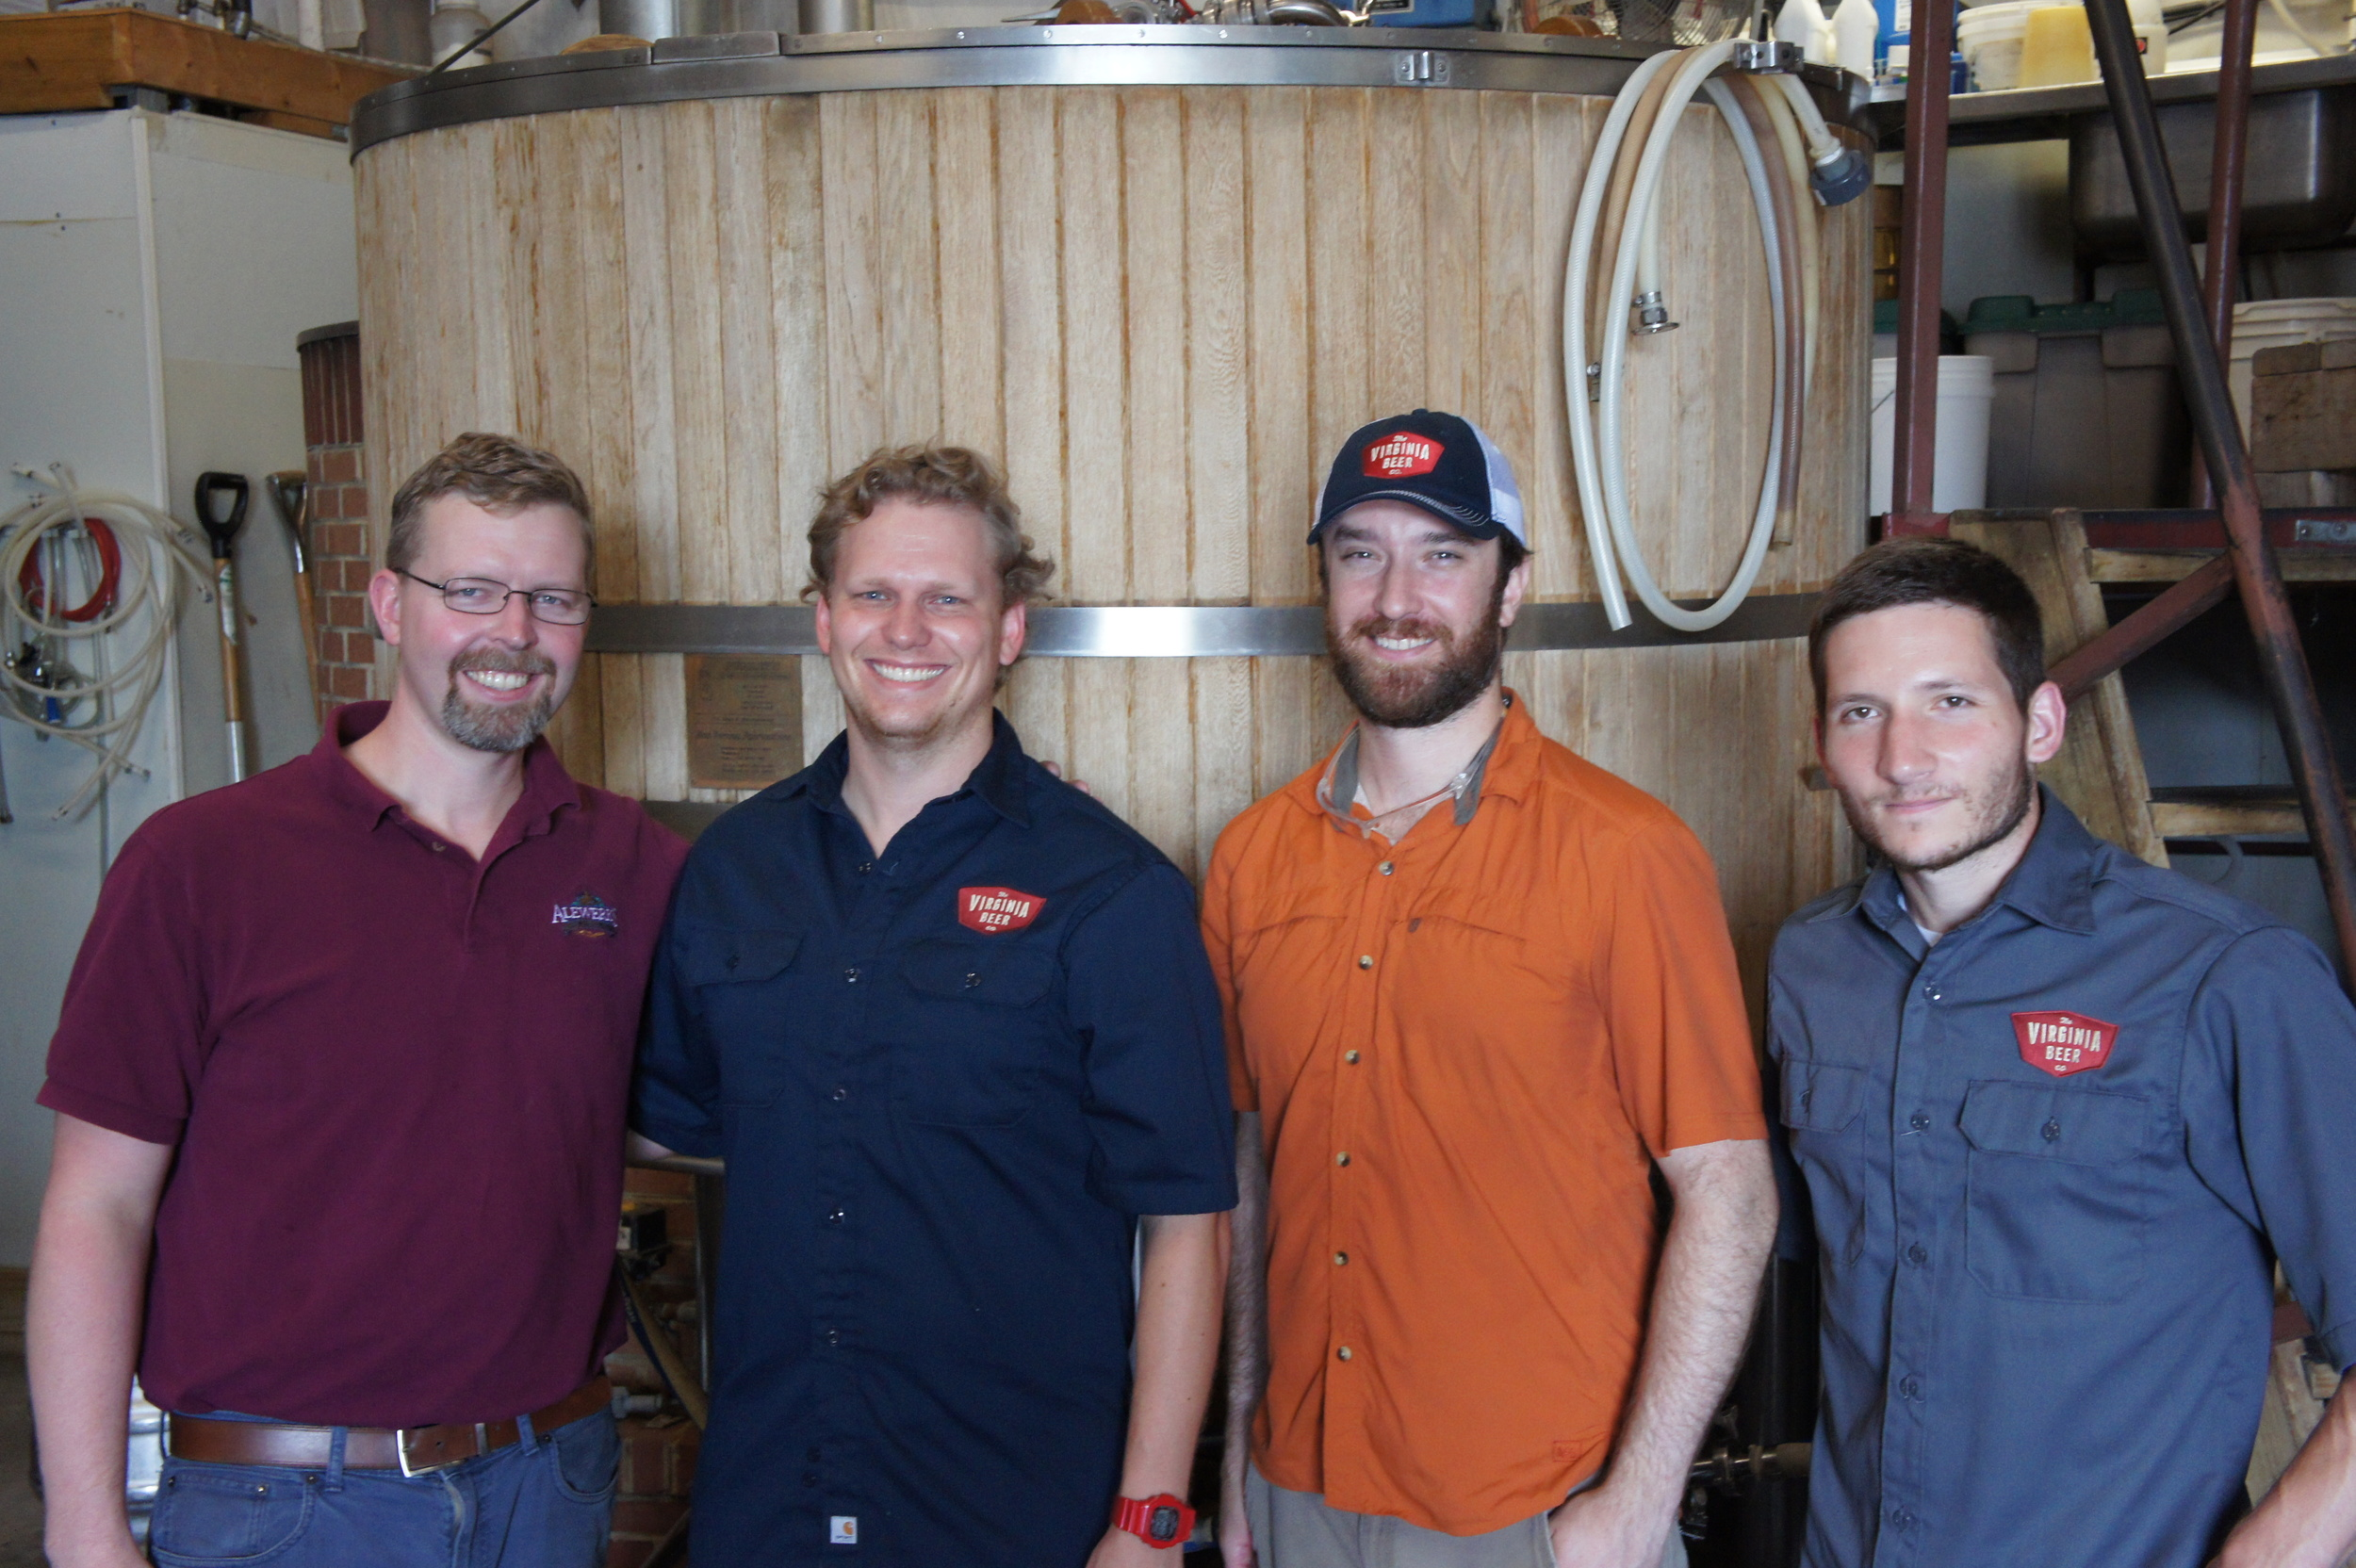 Pictured (from left to right): Geoff Logan, Brewmaster, Alewerks Brewing Company; Robby Willey, Co-Founder, The Virginia Beer Company; Jonathan Newman, Brewmaster, The Virginia Beer Company; and Chris Smith, Co-Founder, The Virginia Beer Company.